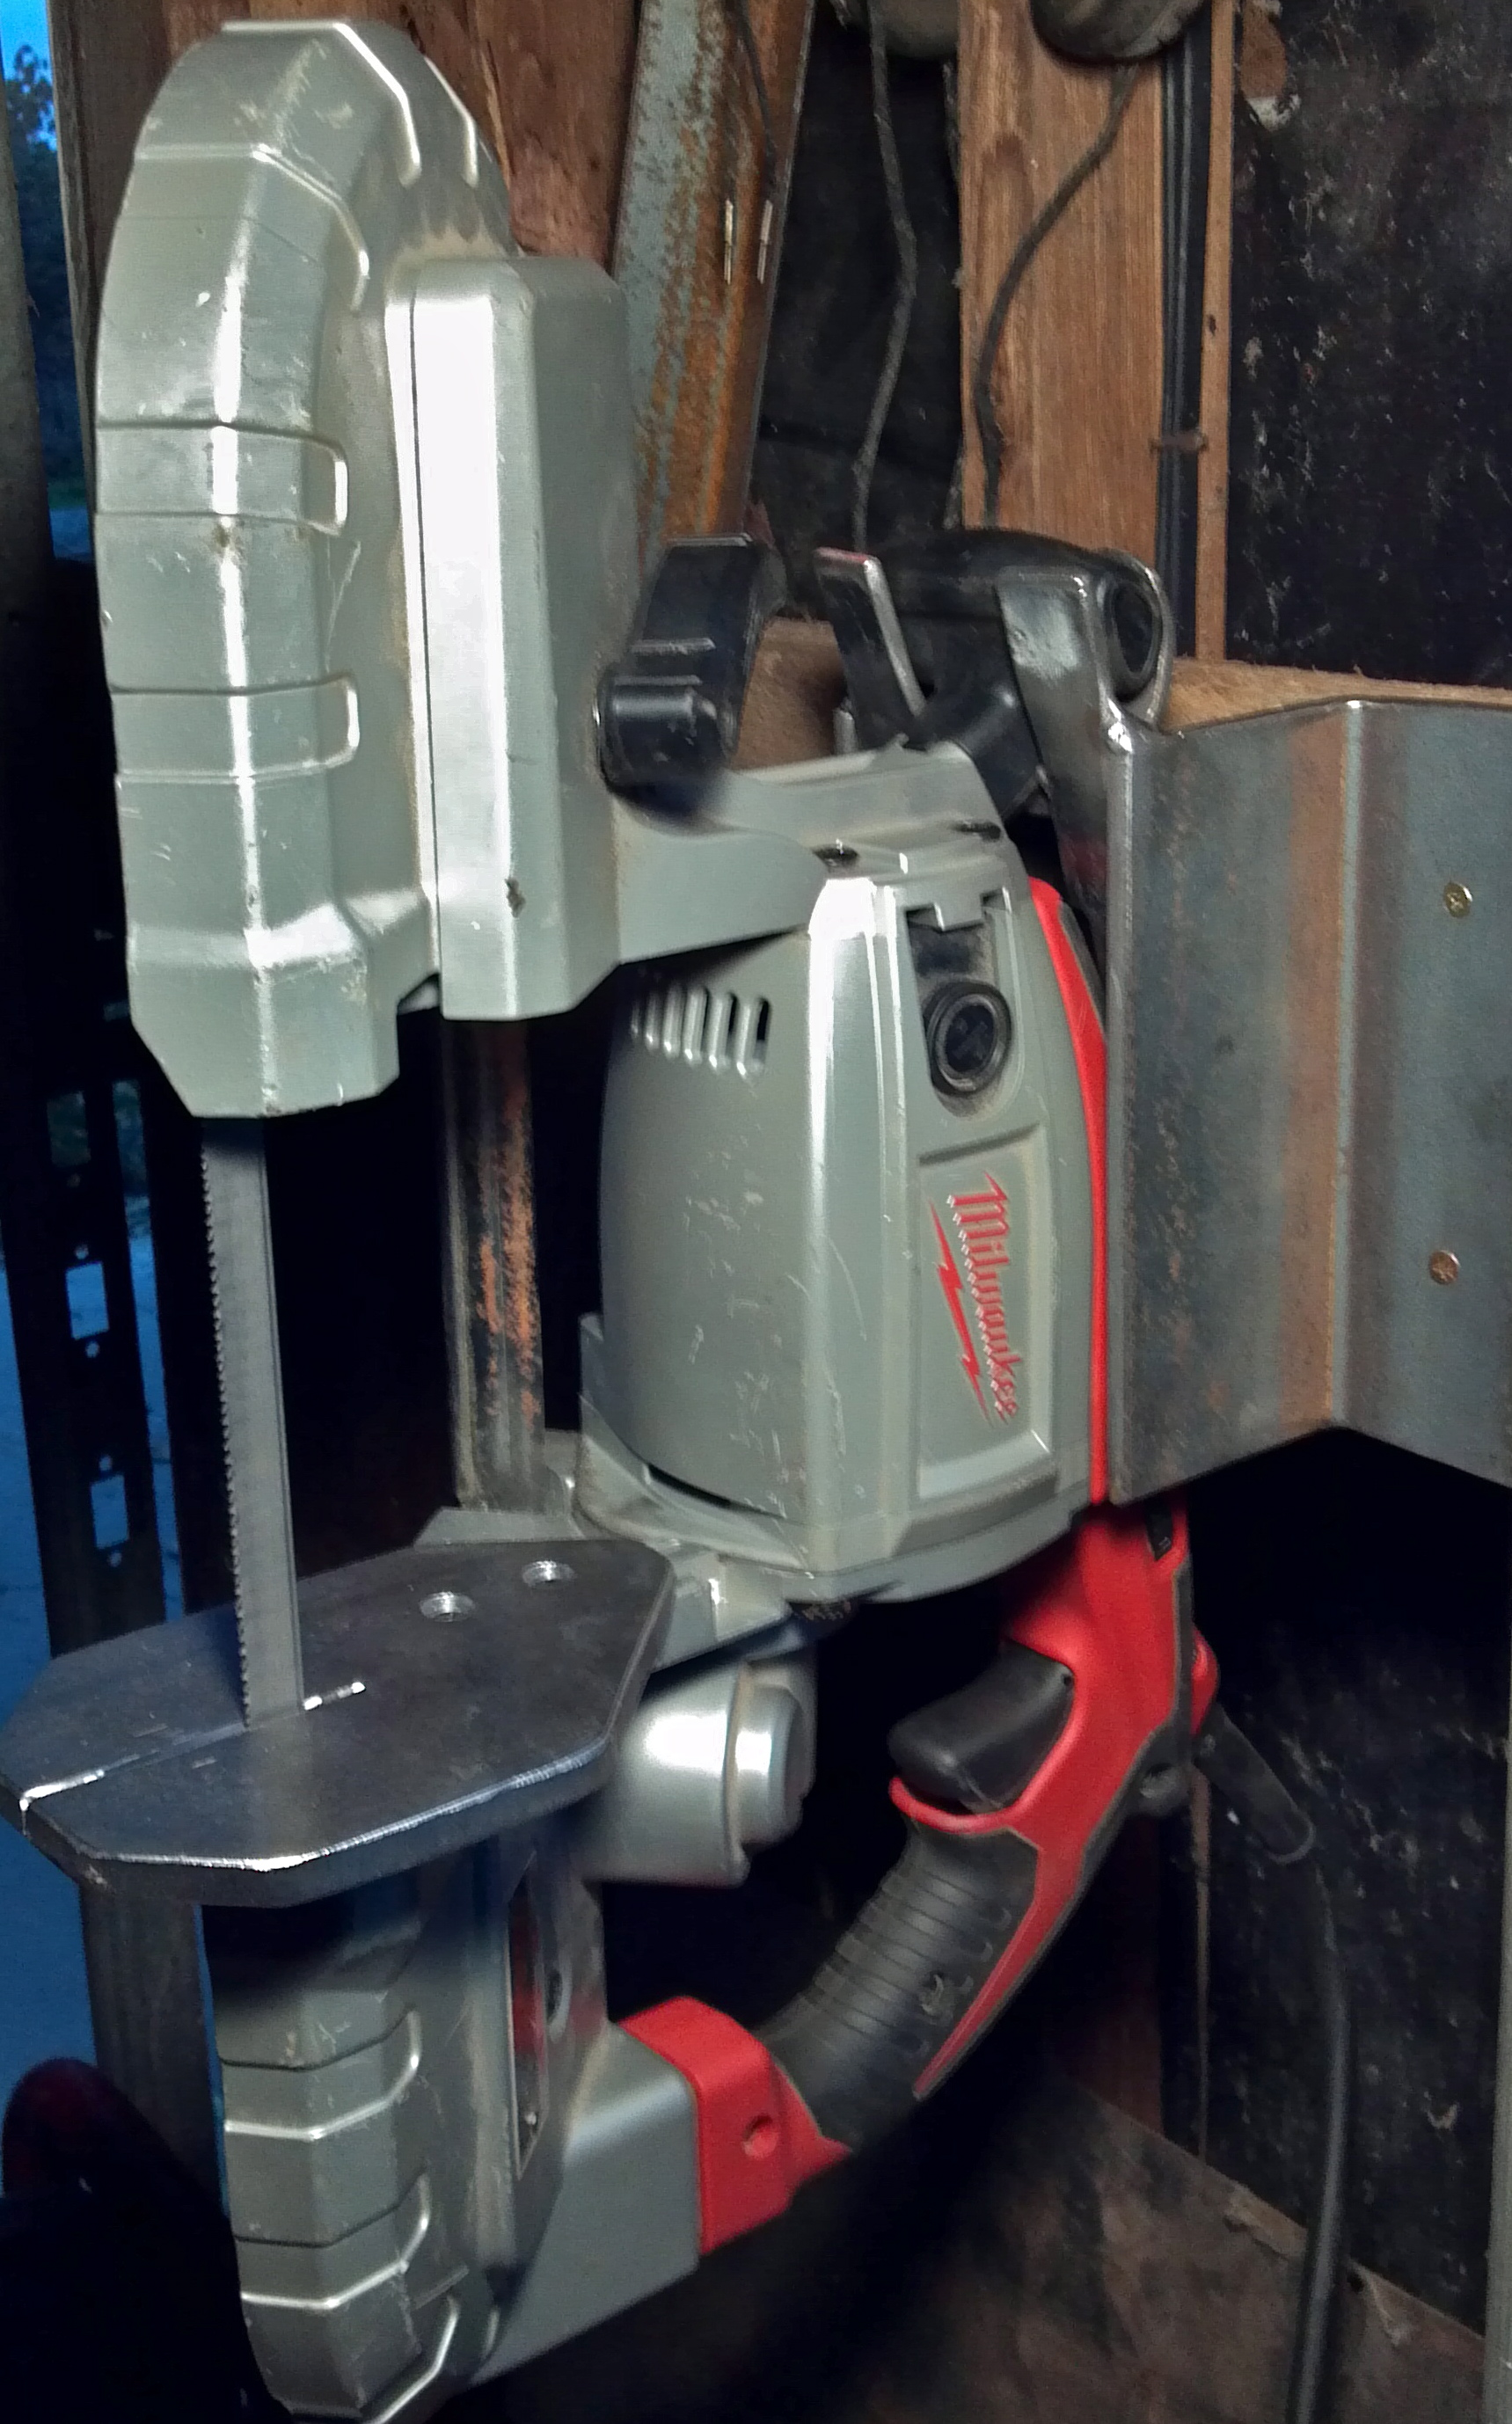 Nifty vertical table saw stand for you portable bandsaw that keeps your bandsaw portable!